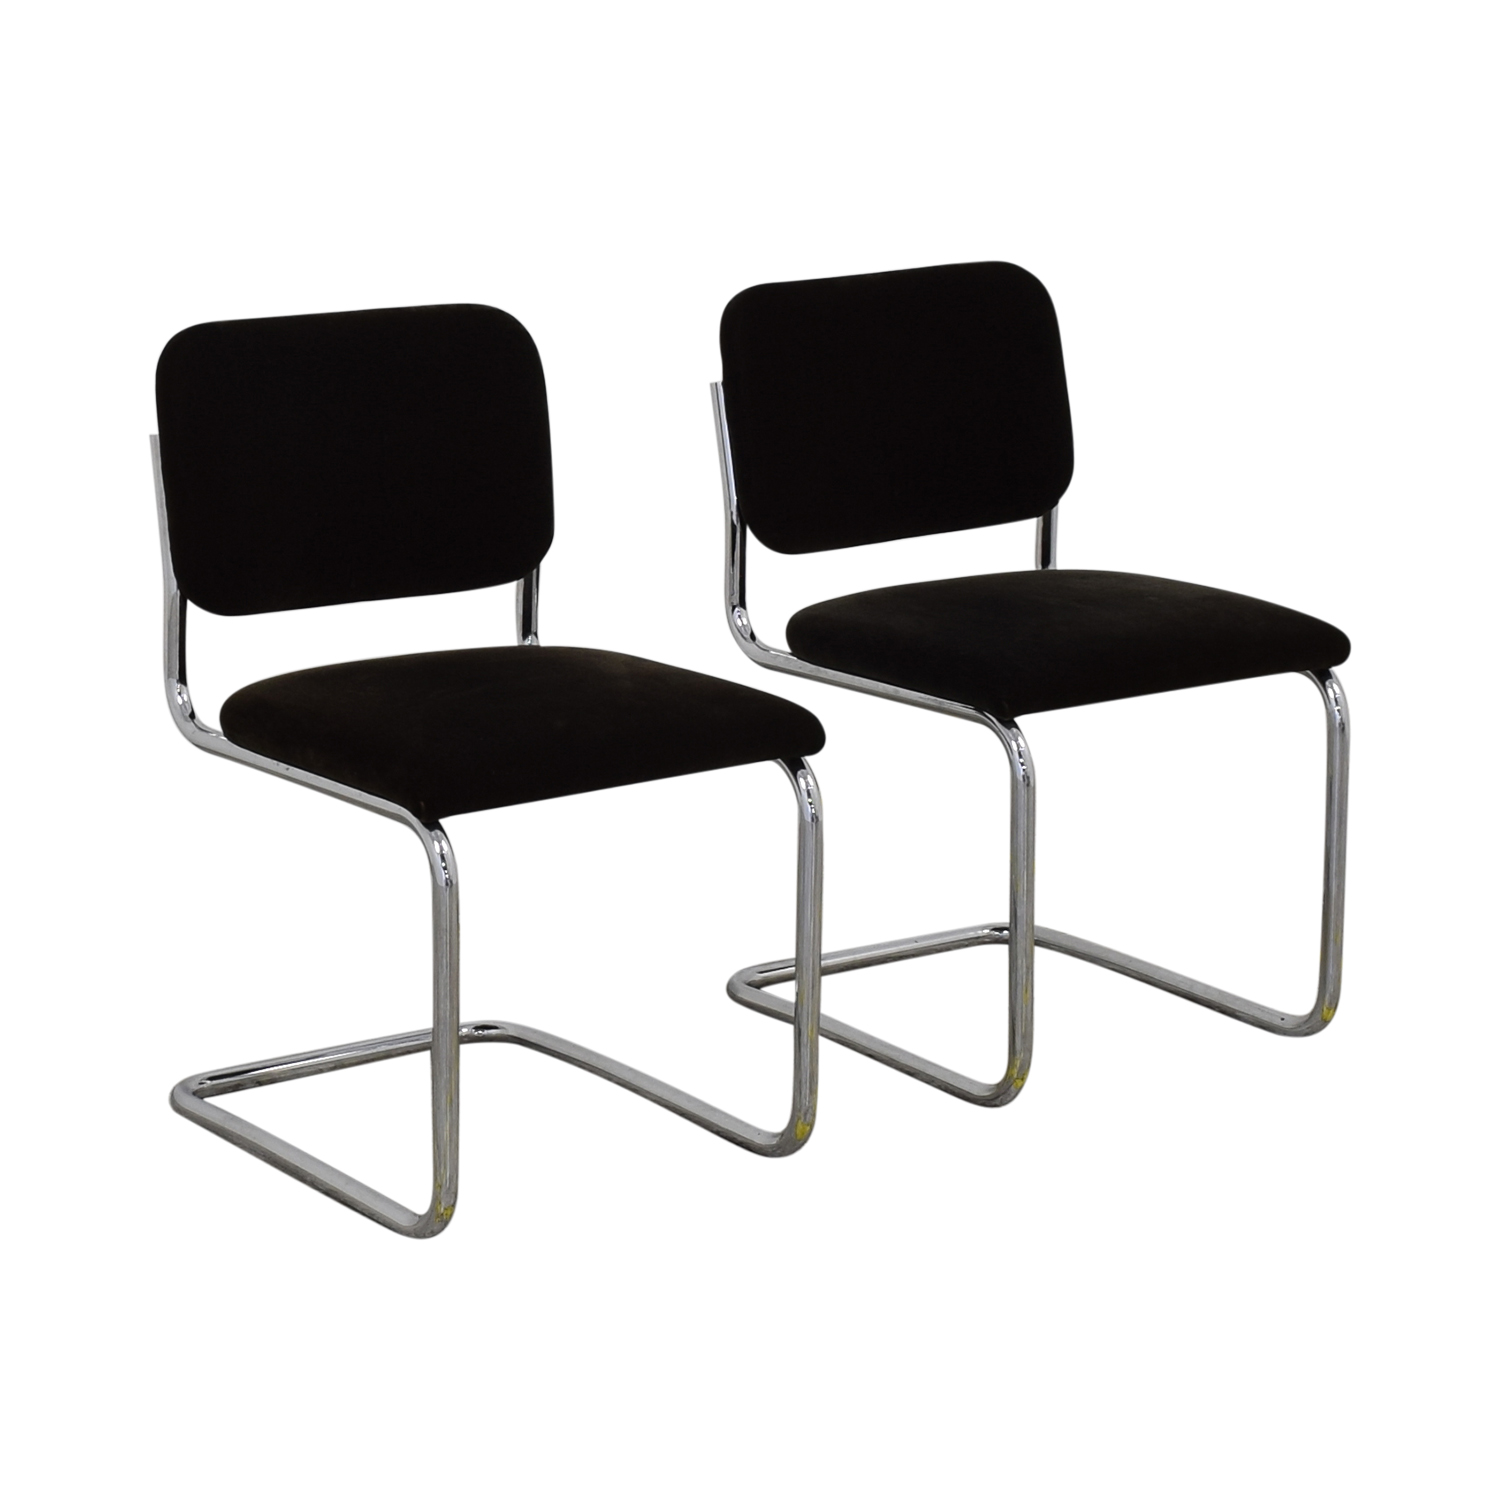 buy Knoll Knoll Marcel Breuer Cesca Chairs online